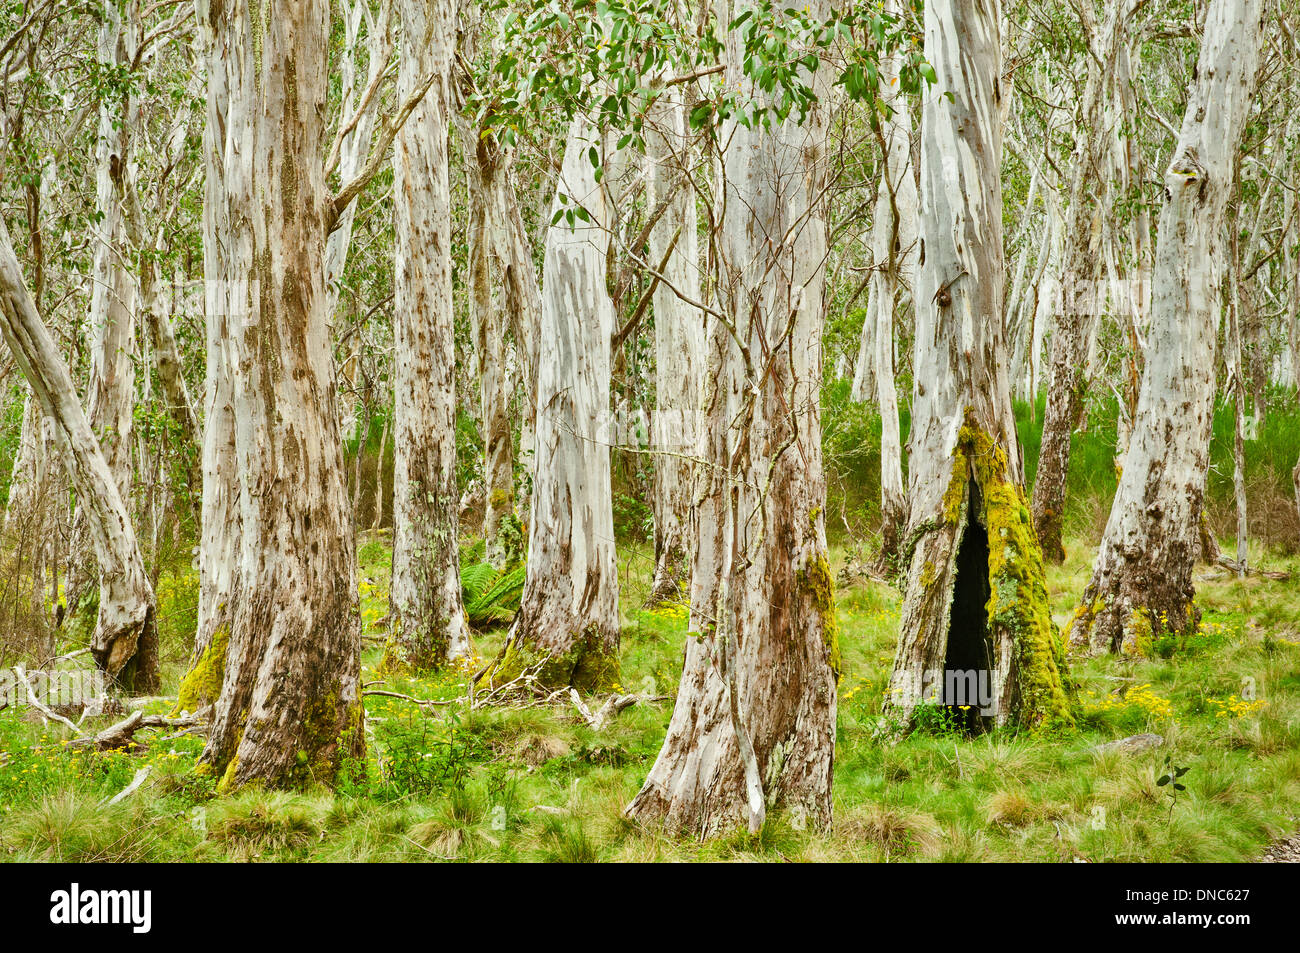 Ancient eucalyptus tree forest. - Stock Image